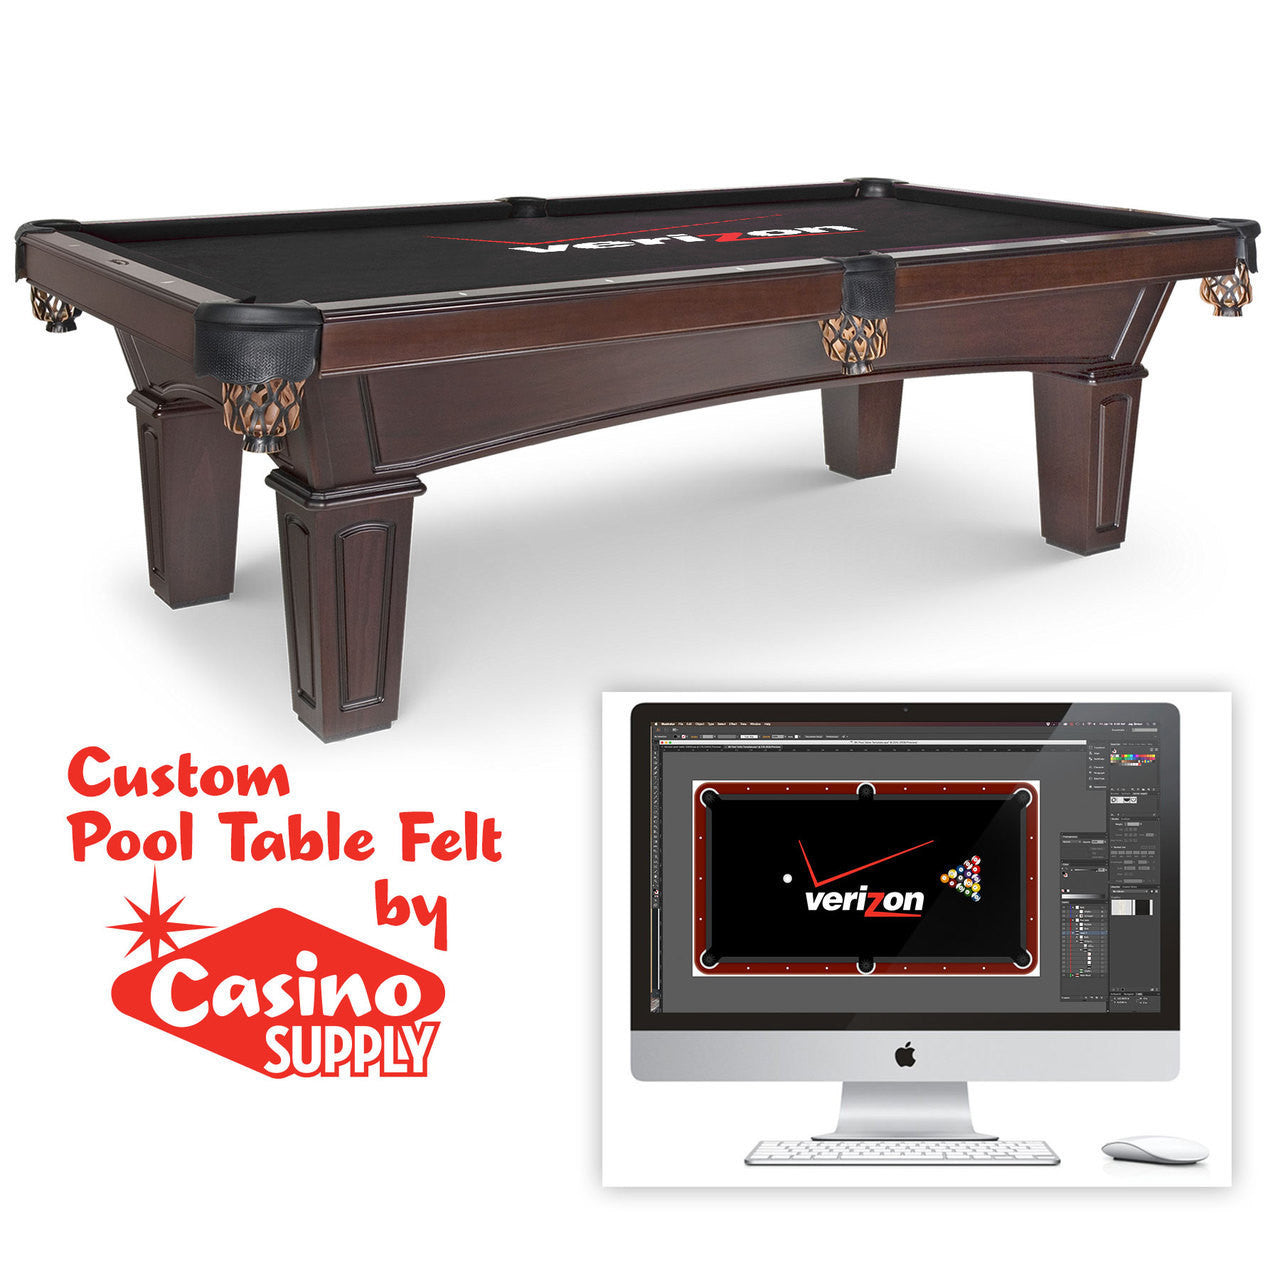 Manufacture and supply casino table evangeline downs race track and casino